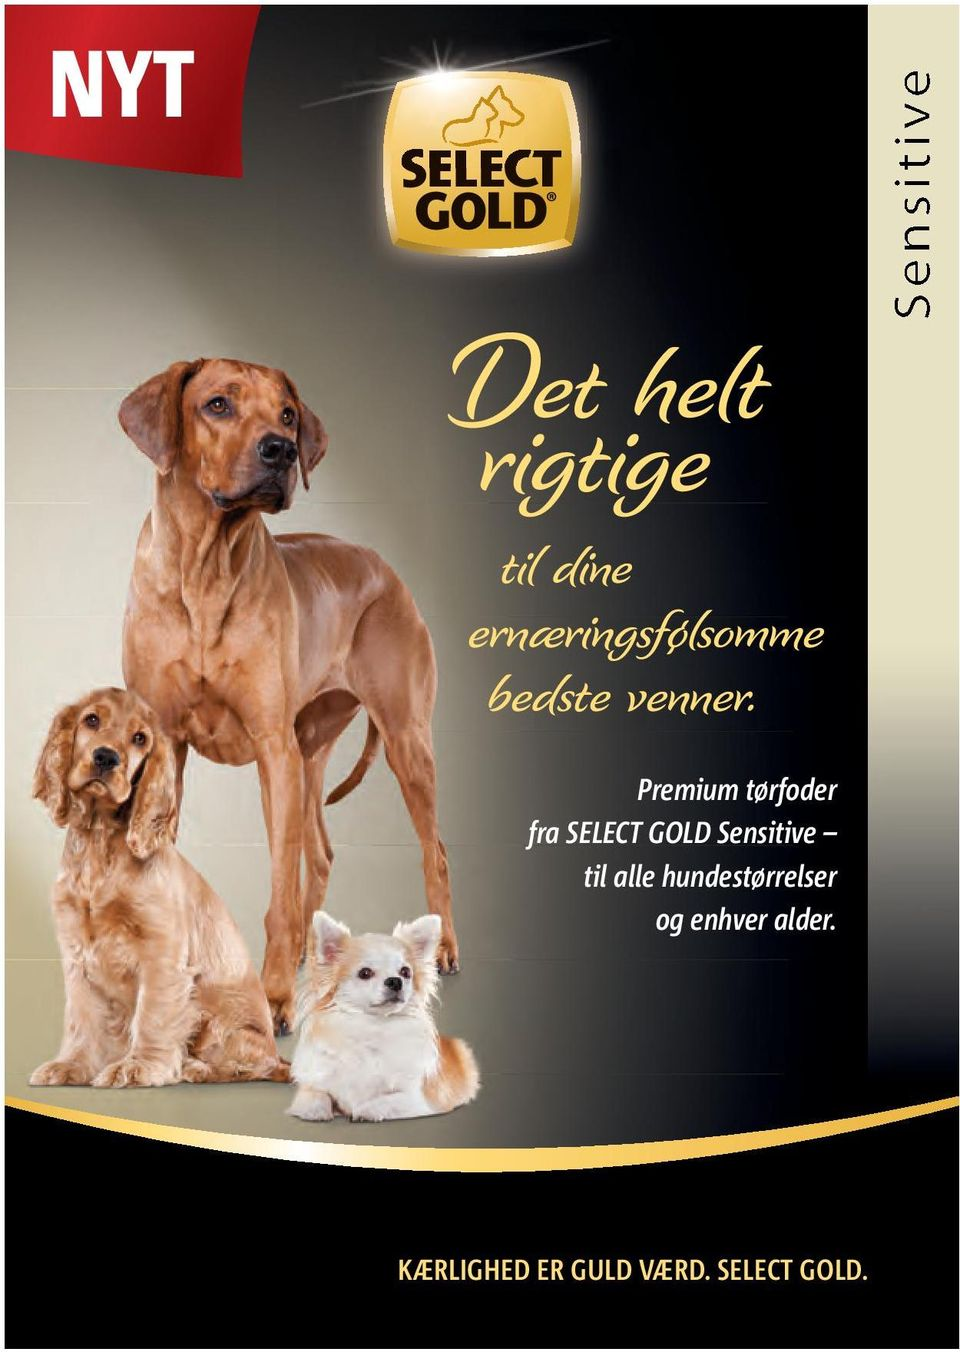 Premium tørfoder fra SELECT GOLD Sensitive